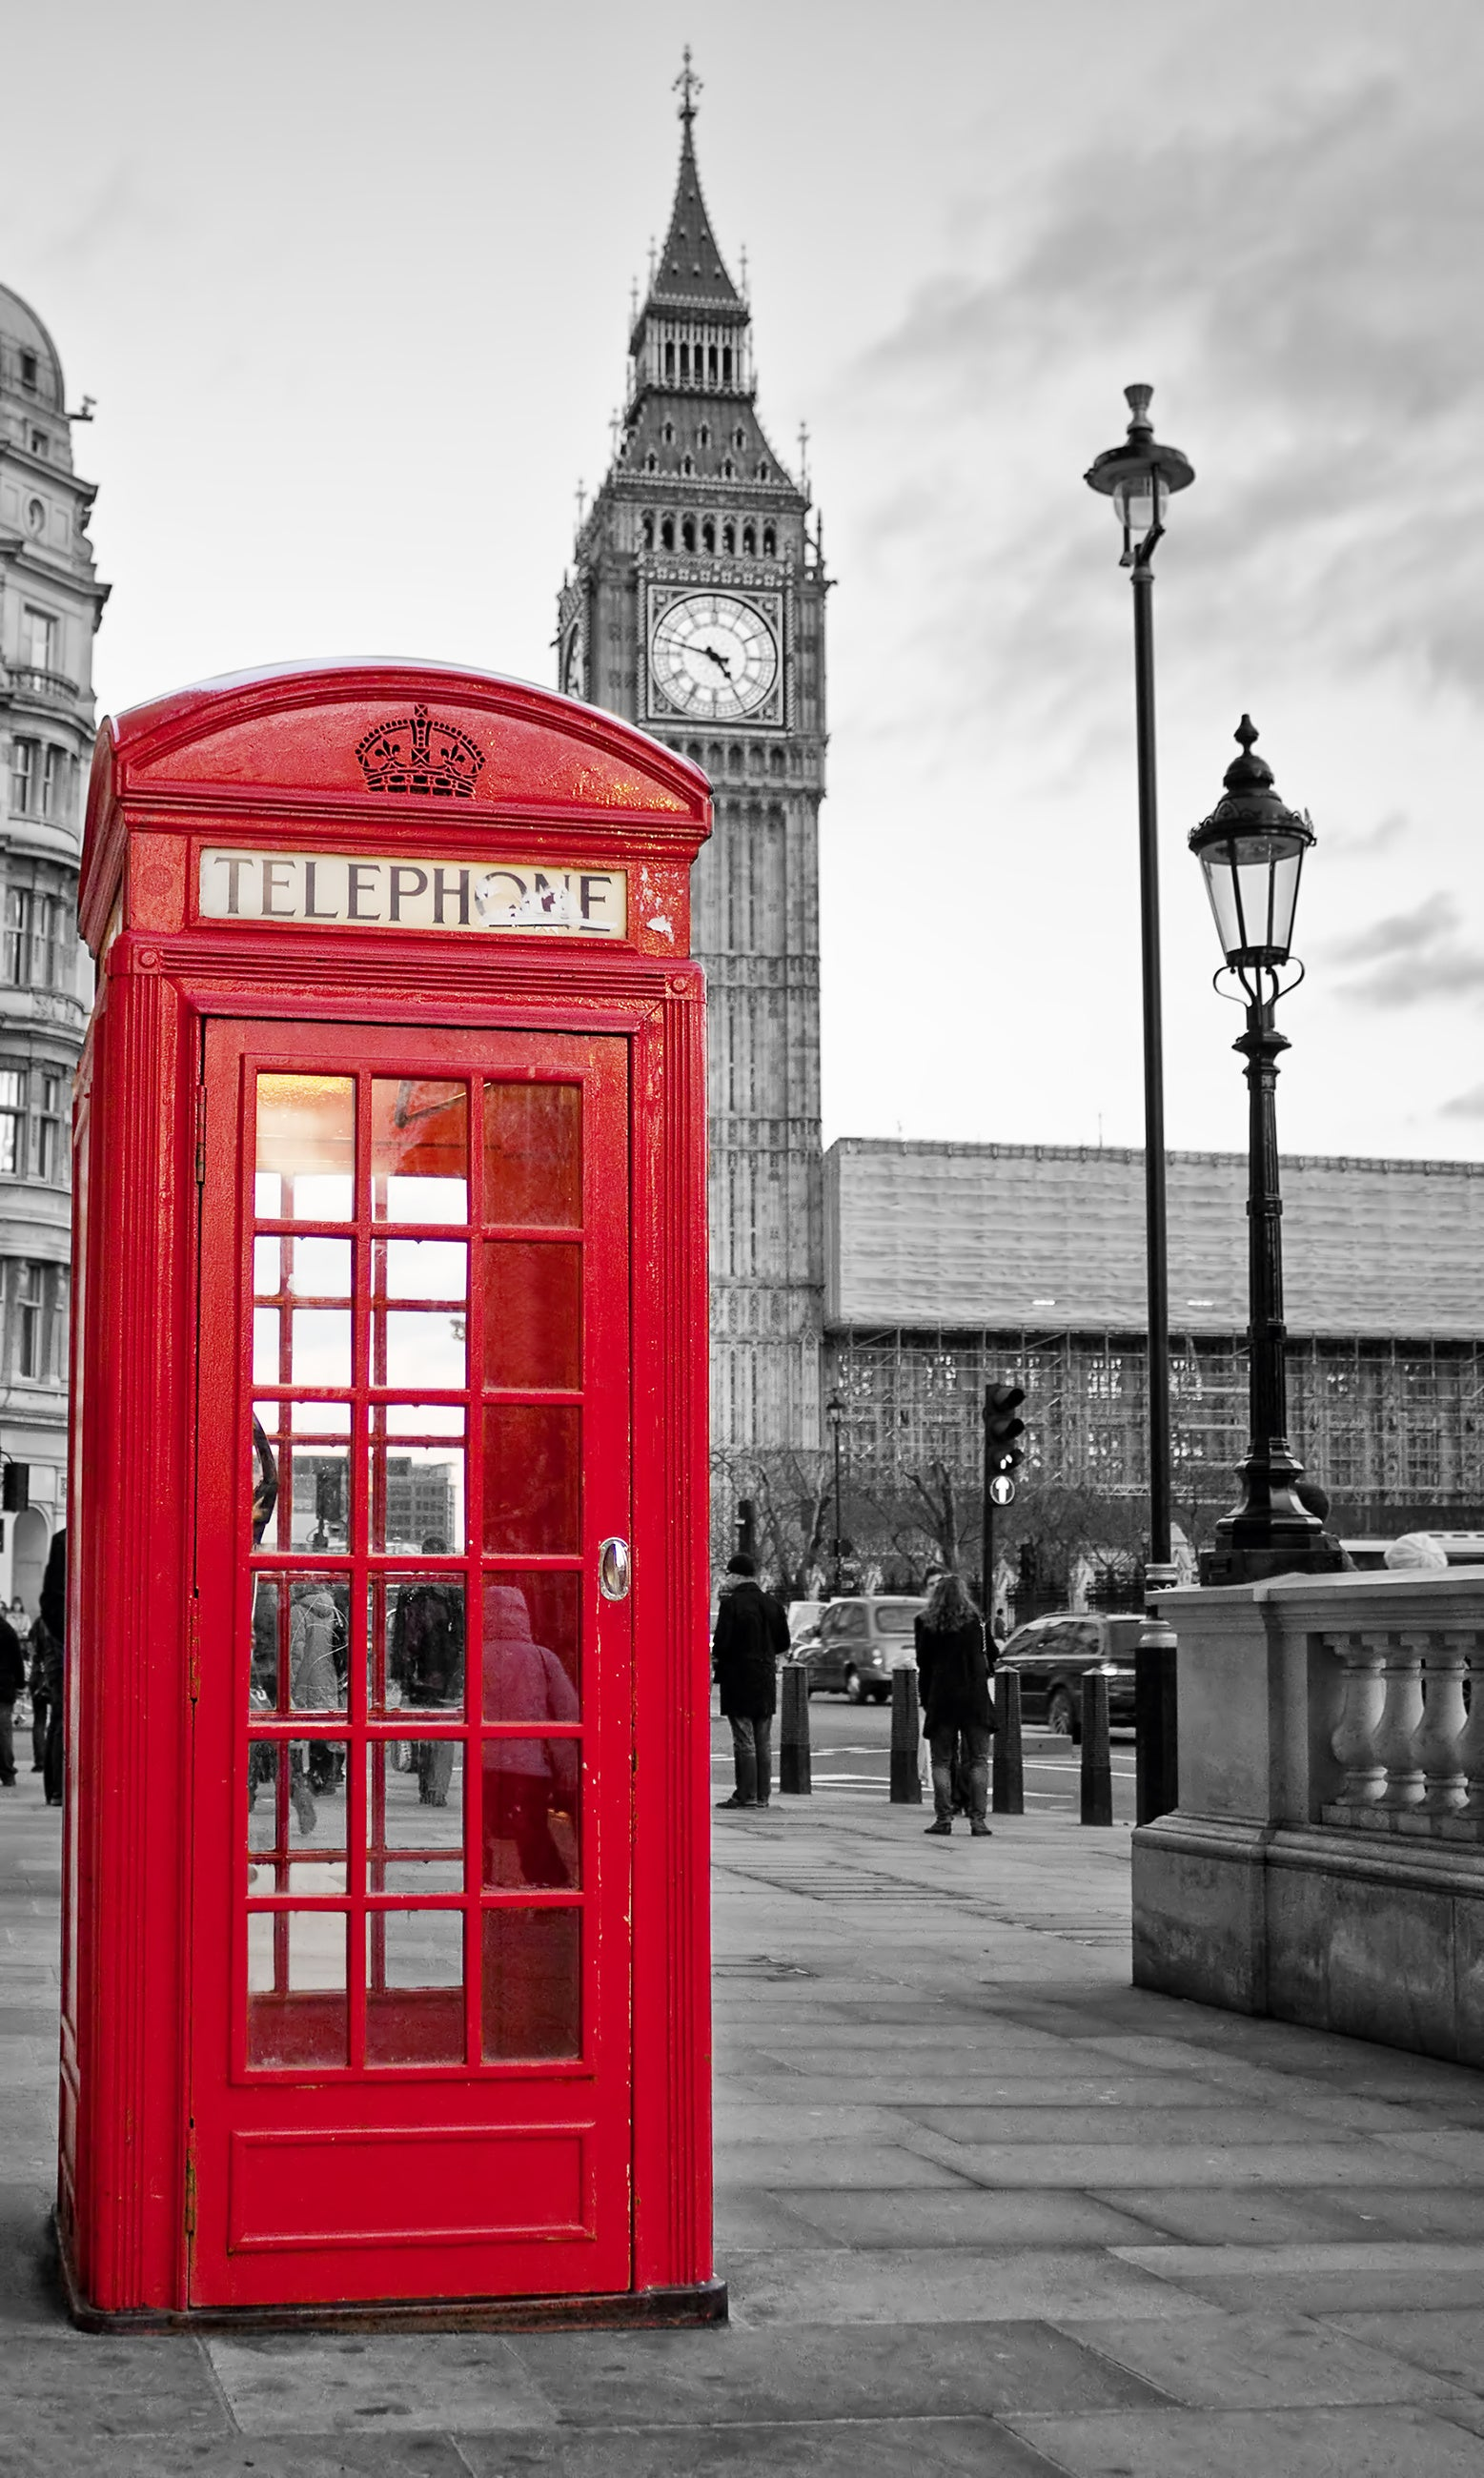 Traditional red phone booth in London with Big Ben clock tower in the background